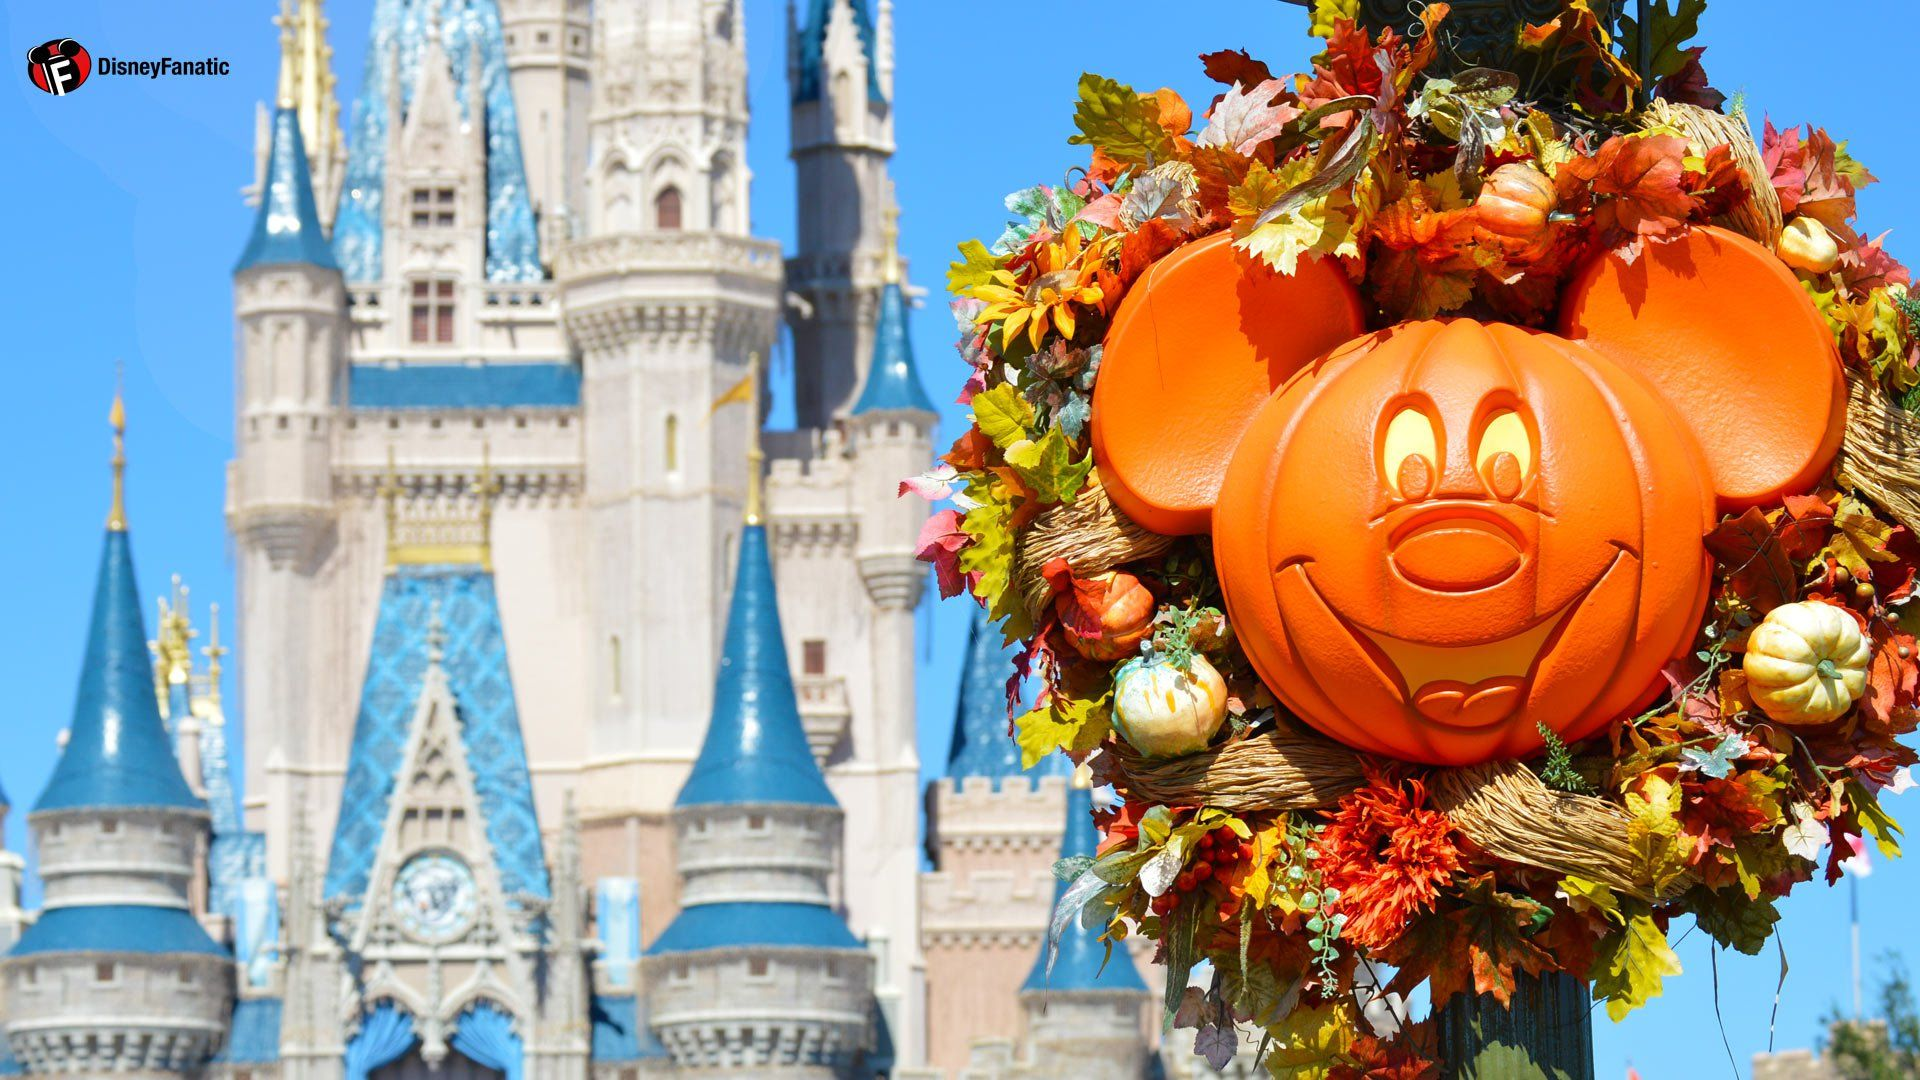 Walt Disney World Resort Wallpaper For Desktop Laptop And Halloween Desktop Wallpaper Fall Wallpaper Iphone Wallpaper Fall